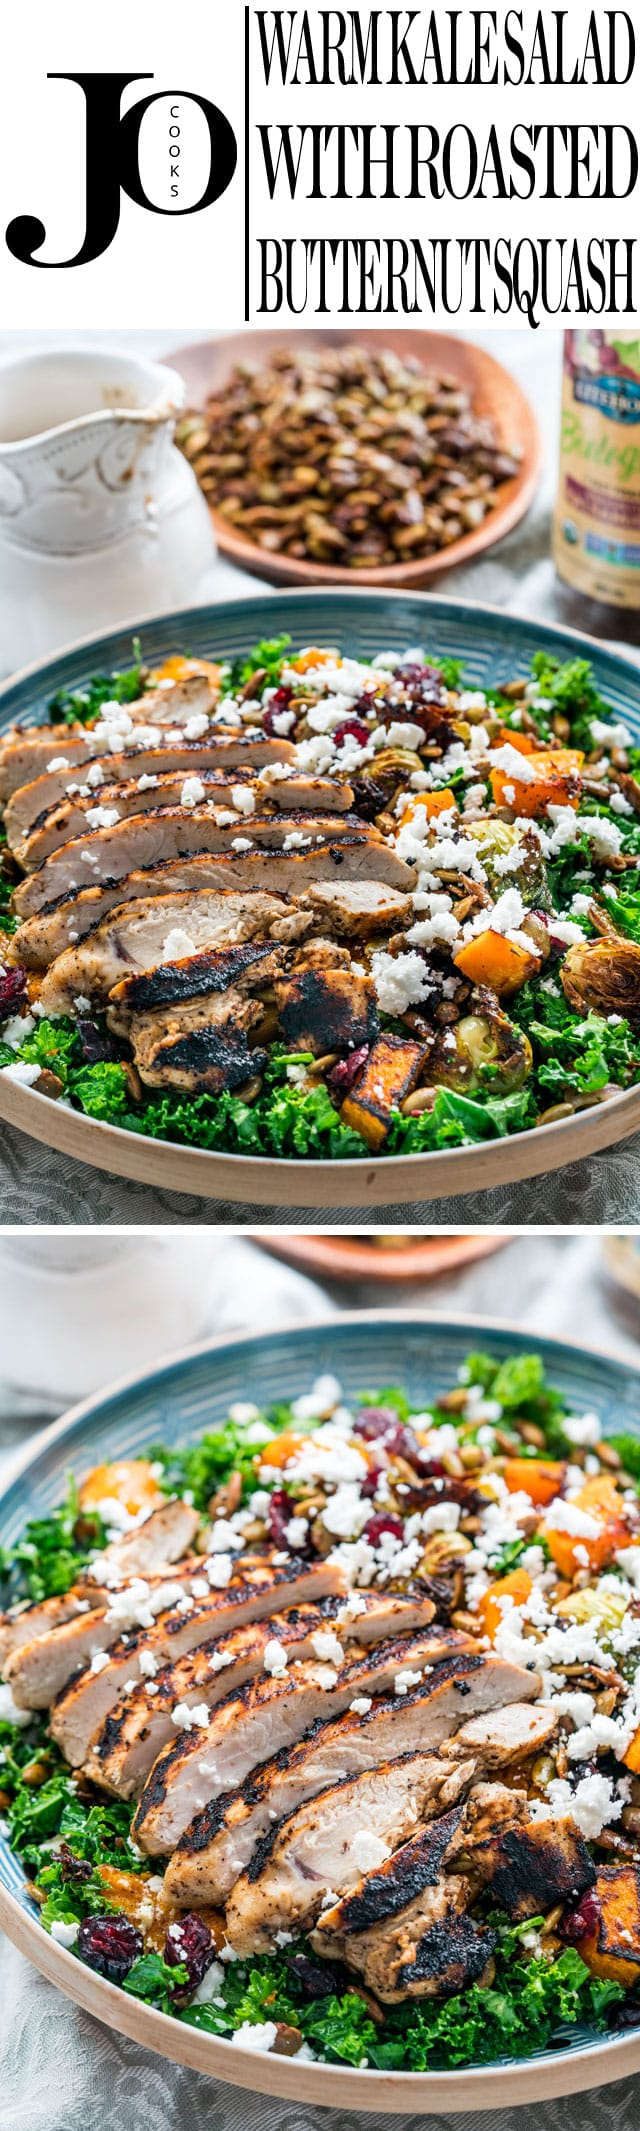 This Warm Kale Salad with Roasted Butternut Squash, balsamic vinaigrette, grilled chicken and sugared roasted pumpkin seeds is the best kind of comfort food perfect for cool autumn evenings!